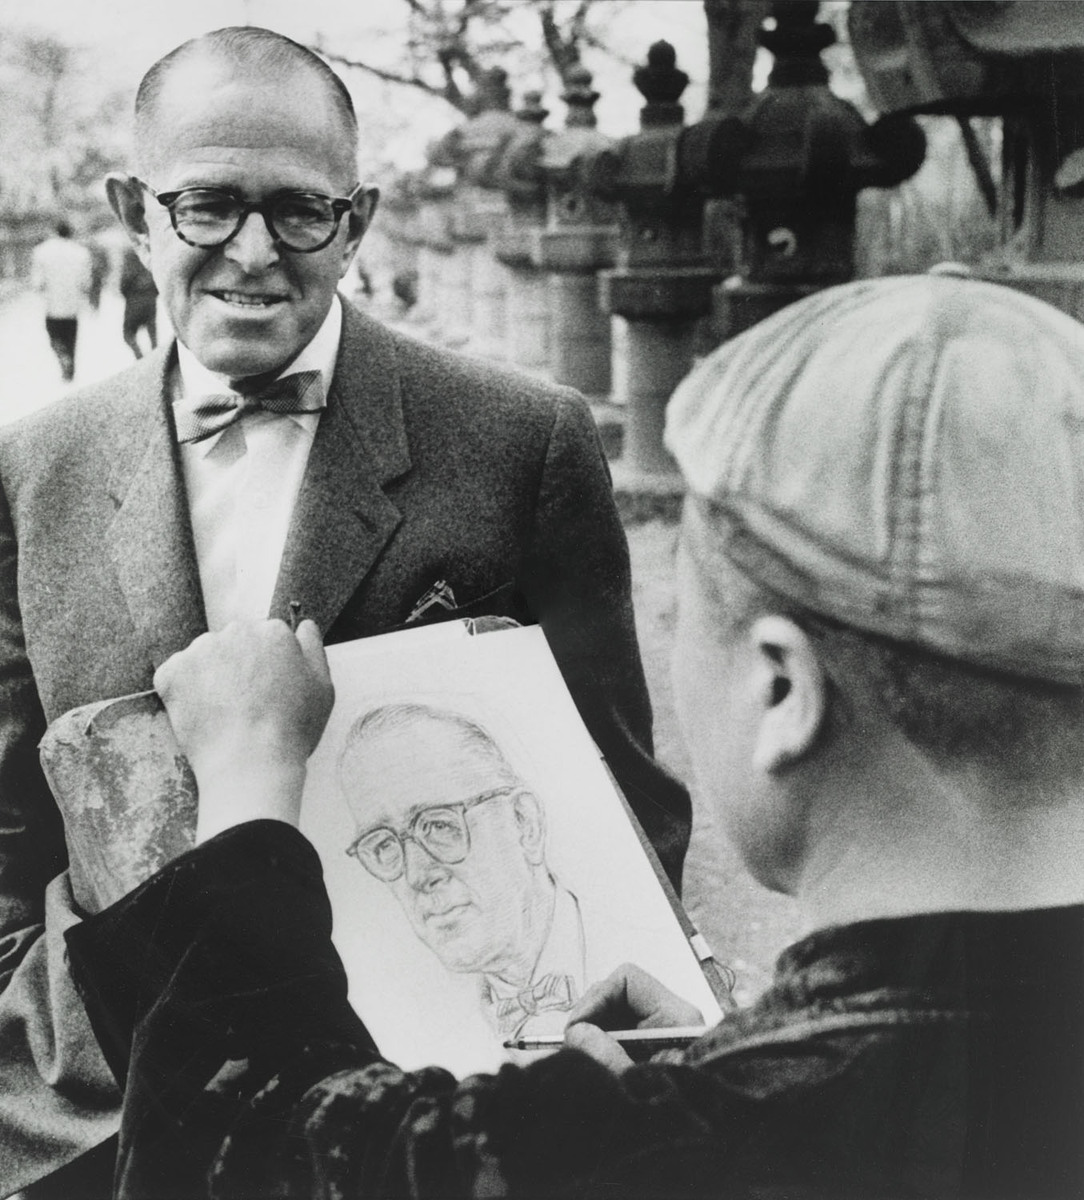 Starr in China with Caricature